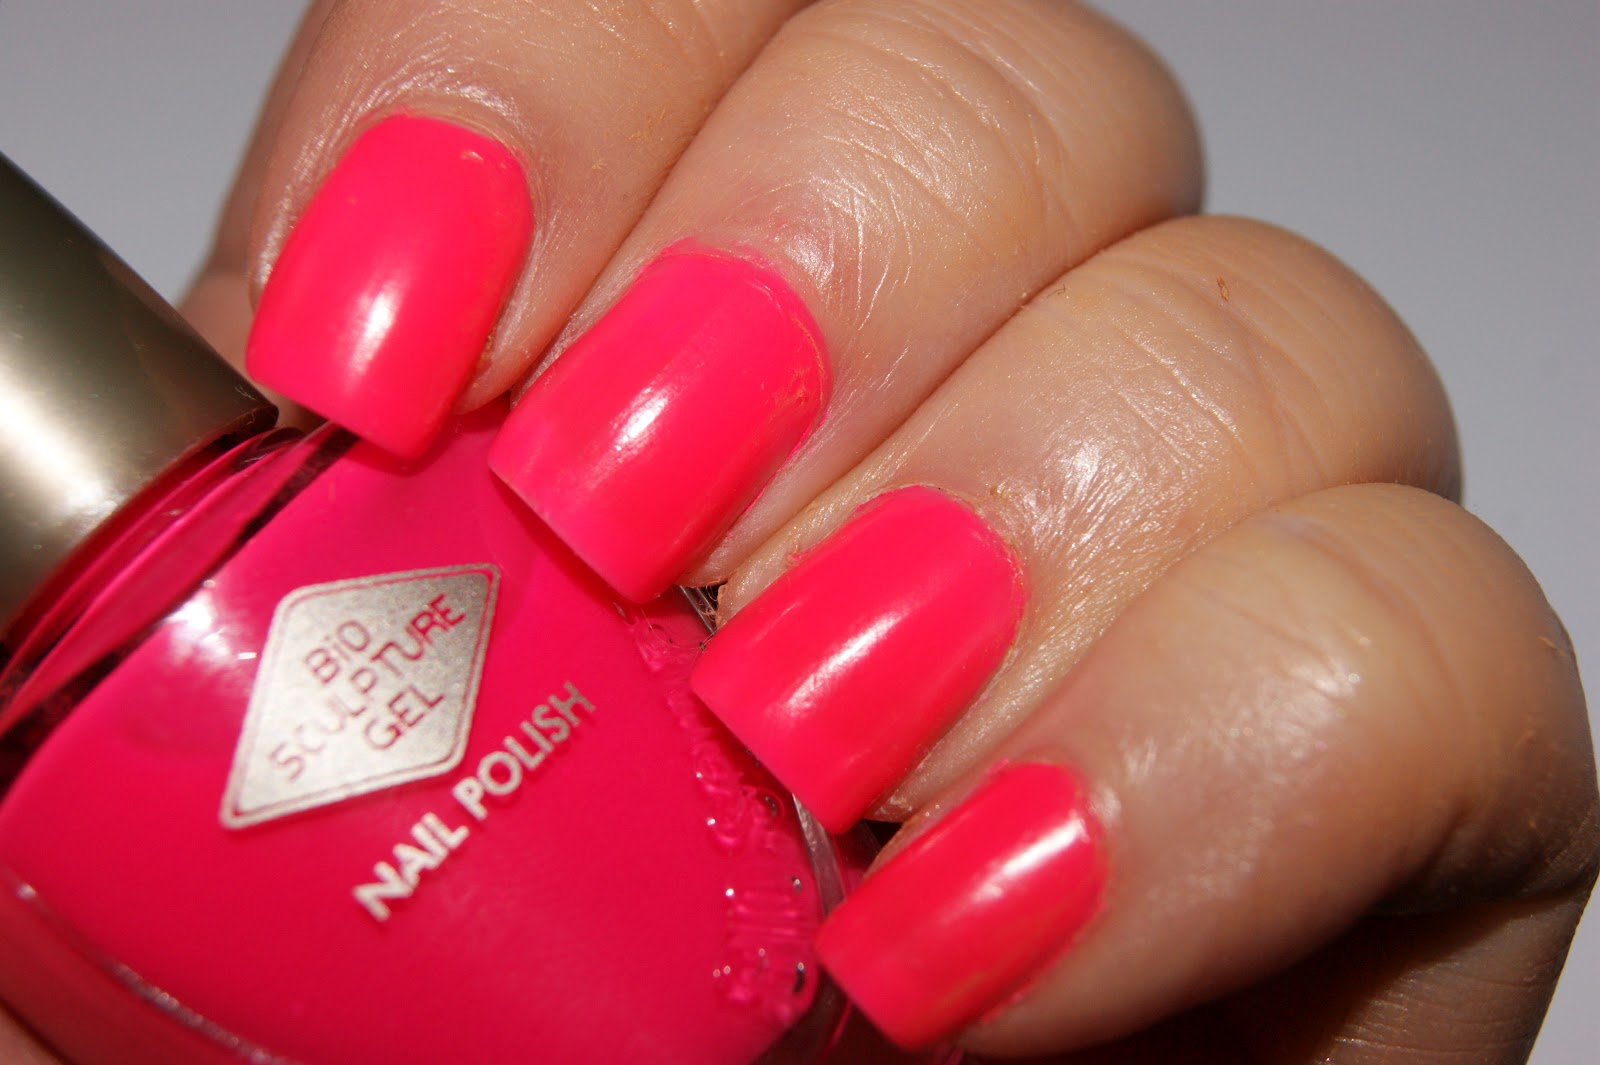 bio sculpture nail polish in 105 jinkie pink review. Black Bedroom Furniture Sets. Home Design Ideas